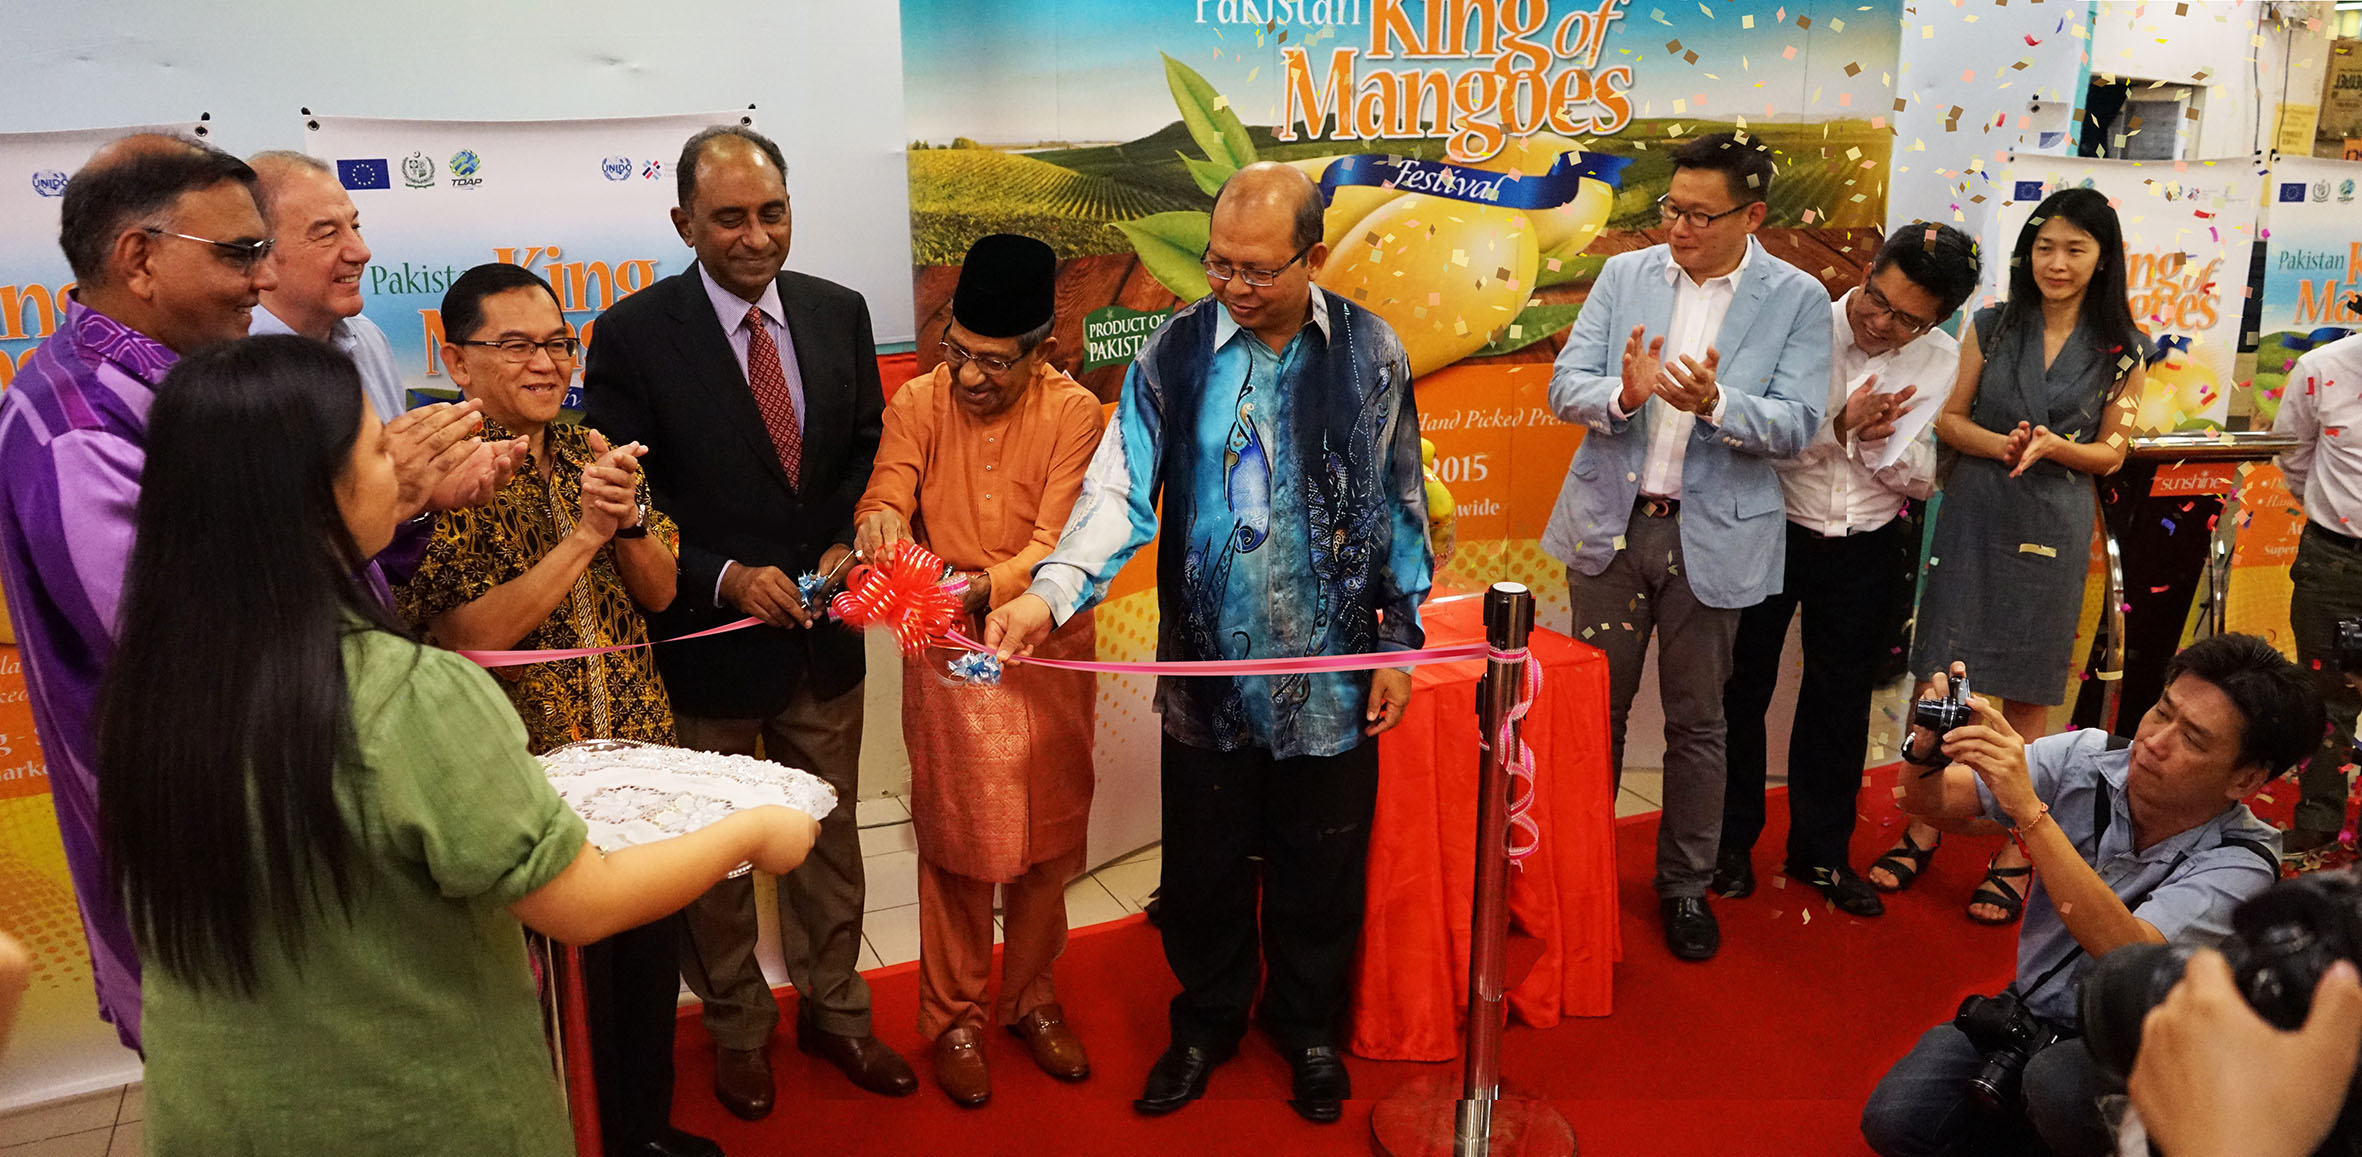 It's Pakistan Mango time! The Pakistan King of Mangoes Festival in Penang is officially launched. (L-R from 2nd left) Dato' Abdul Rafique, Director of Sunshine Aman Jaya; Robert Hawkin, Honorary Consul of the United Kingdom; Mr. Taufik, Consul General of Indonesia in Penang; Syed Hassan Raza, the Pakistan High Commissioner to Malaysia; Tan Sri Yusoff Latif, Chairman of the Penang State Goodwill Council; Dato' Seri Farizan, the Penang State Secretary; Koay Swee Aik, Director of Chop Tong Guan; Kit Chan of UNIDO; Cynthia Hwang, CEO of Sunshine Wholesale Mart.